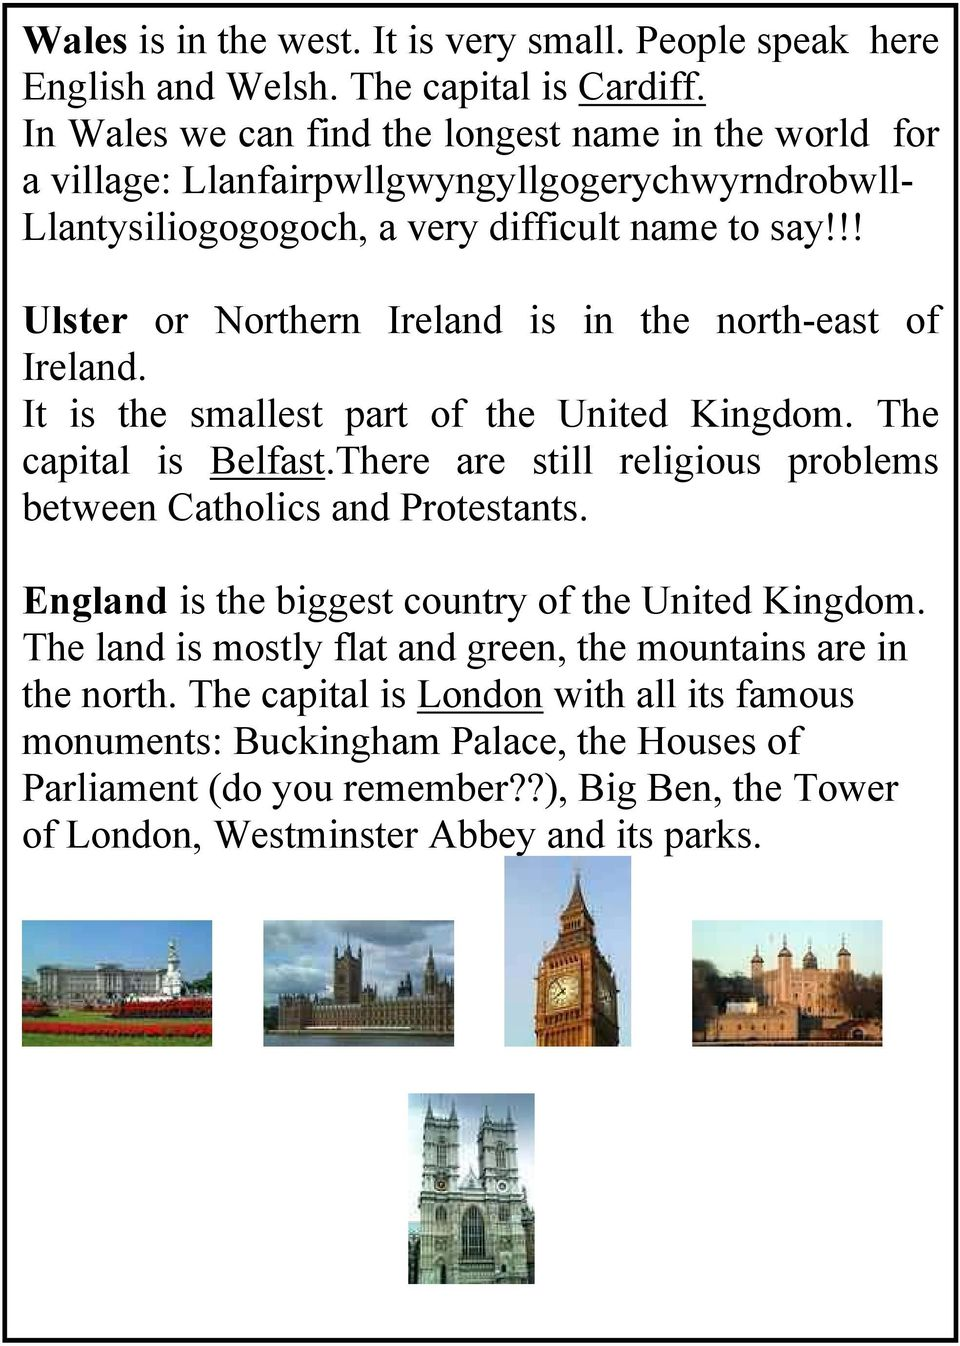 !! Ulster or Northern Ireland is in the north-east of Ireland. It is the smallest part of the United Kingdom. The capital is Belfast.